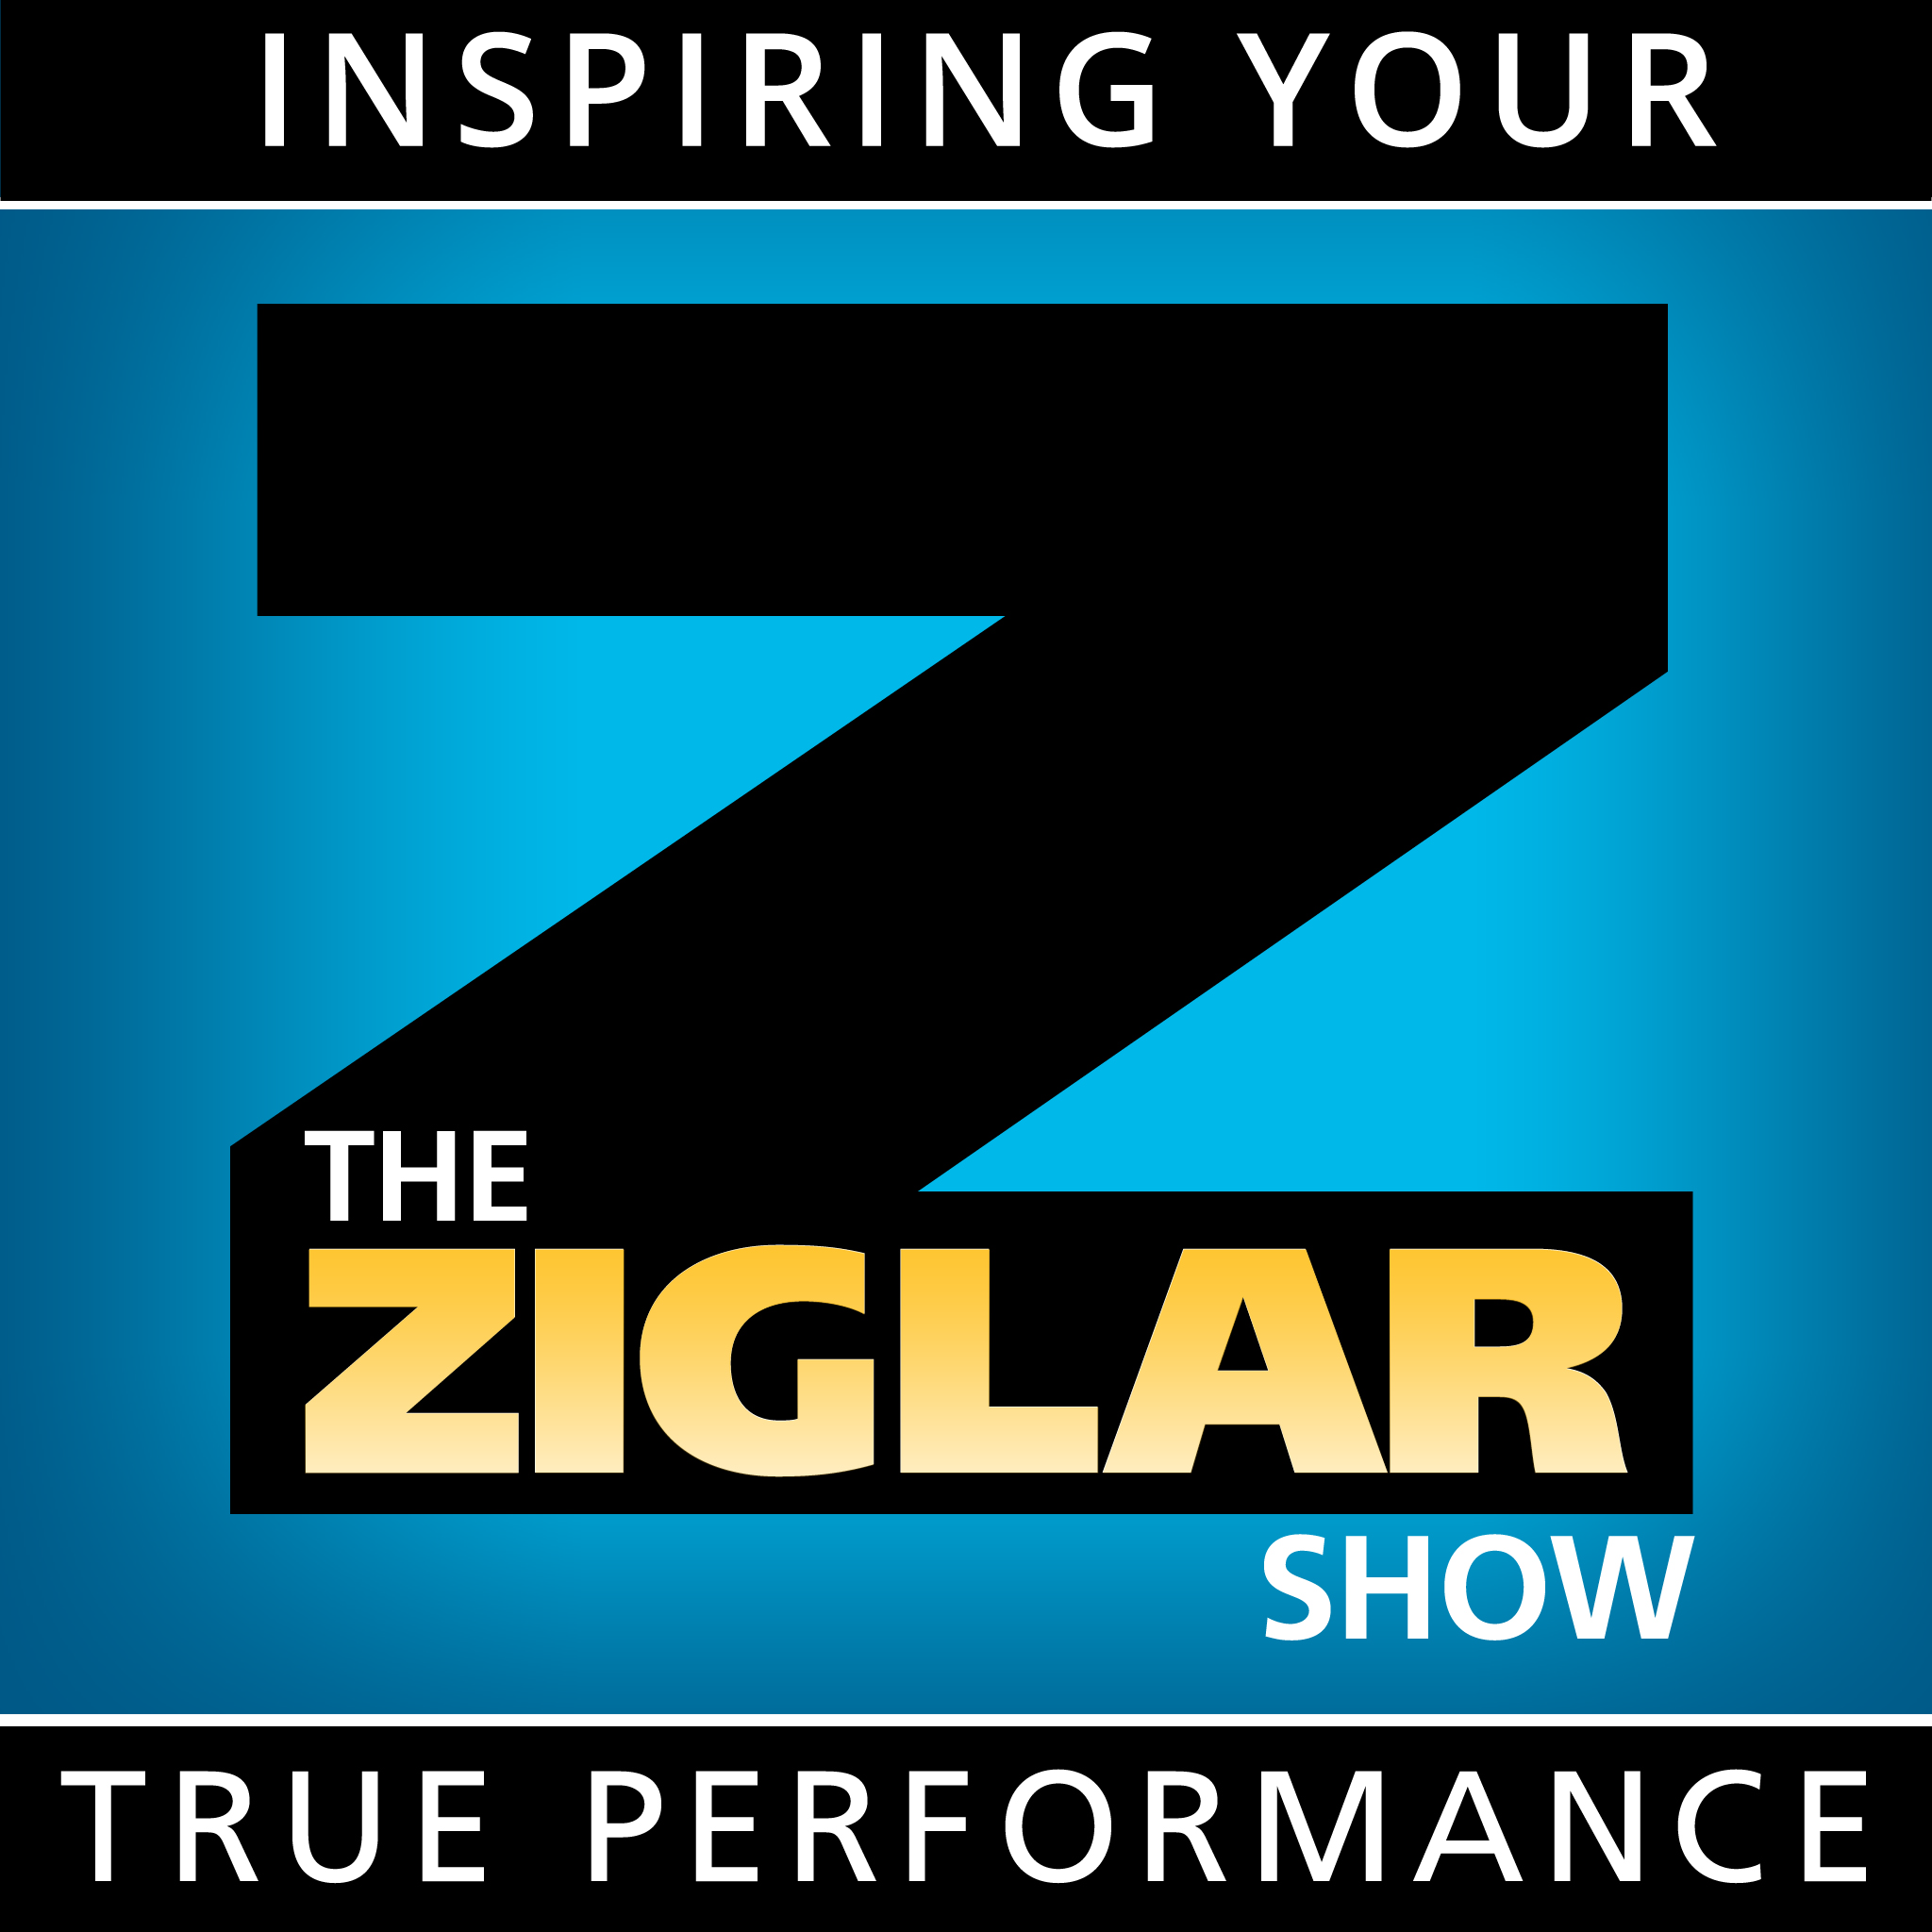 Vision for Your Life    The Ziglar Show-Inspiring True Performance